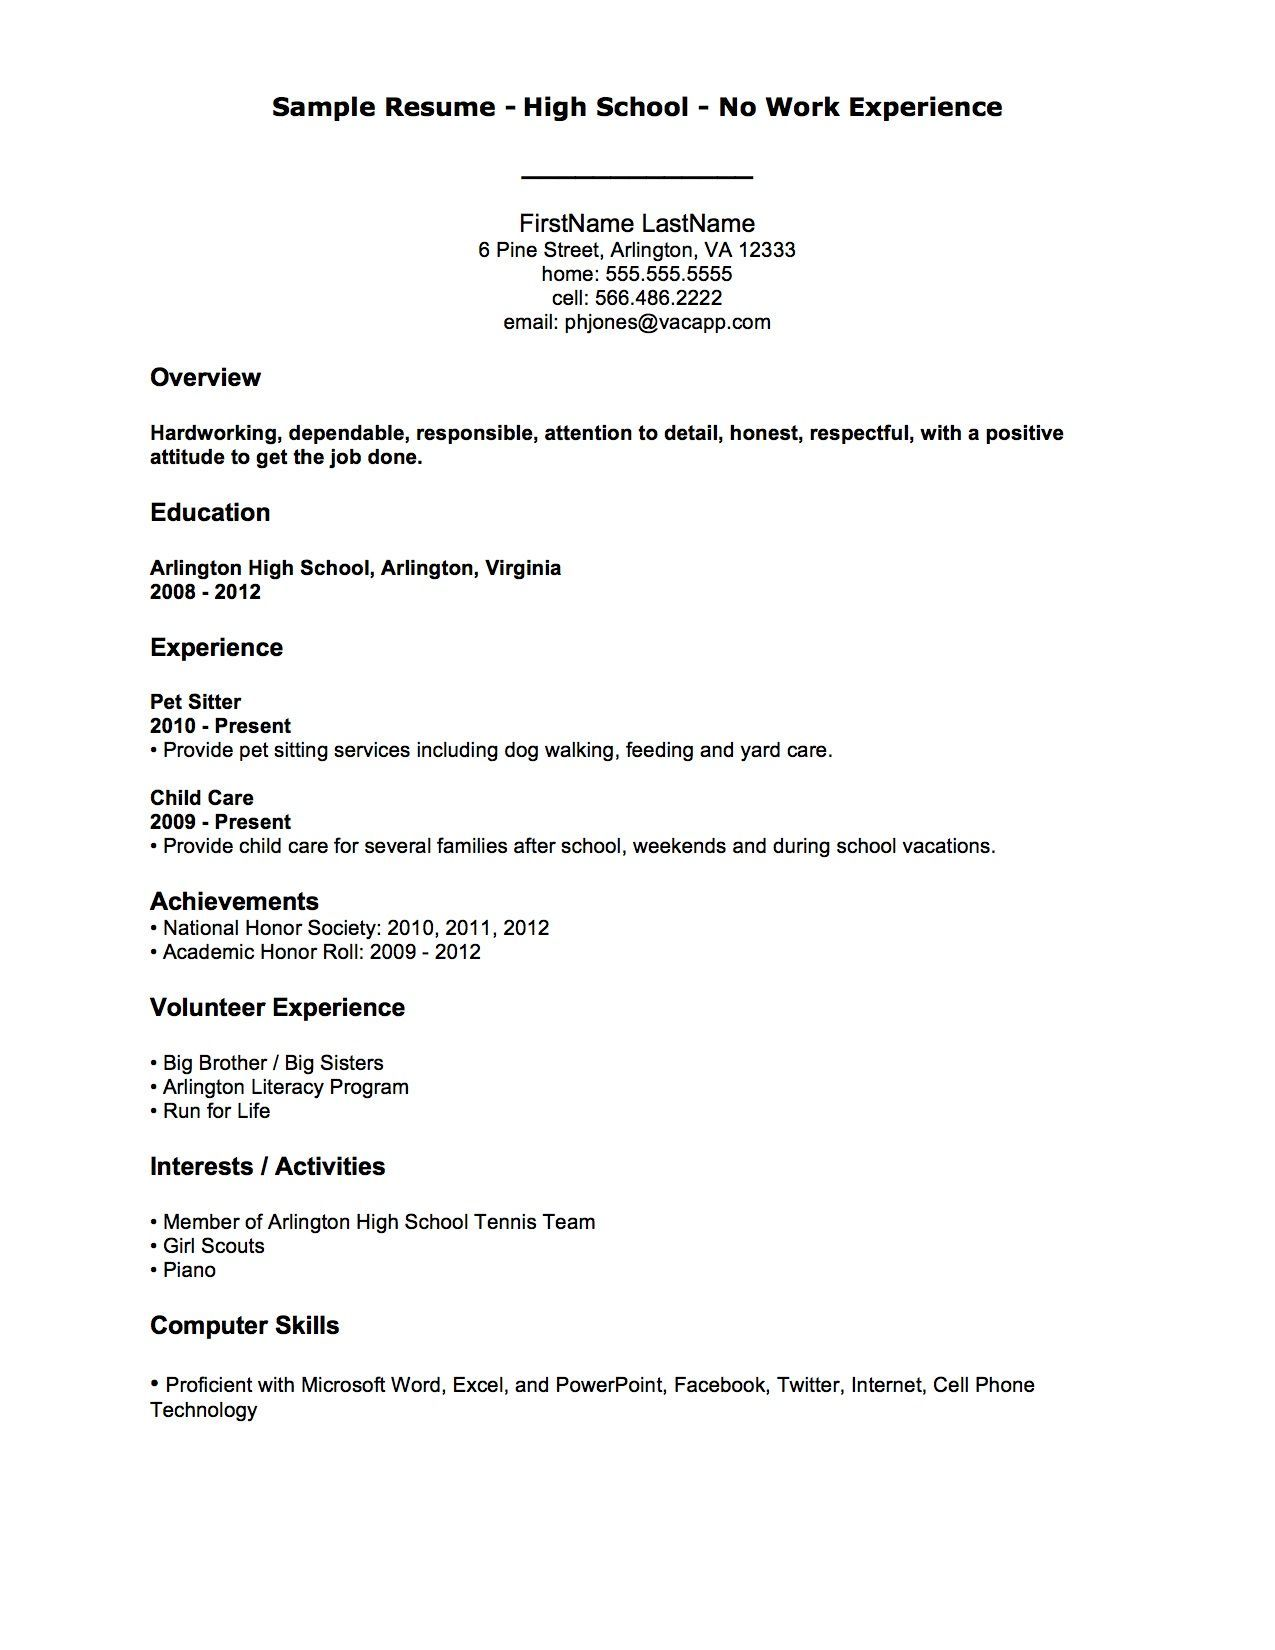 Resume Examples Job Experience First Job Resume Job Resume